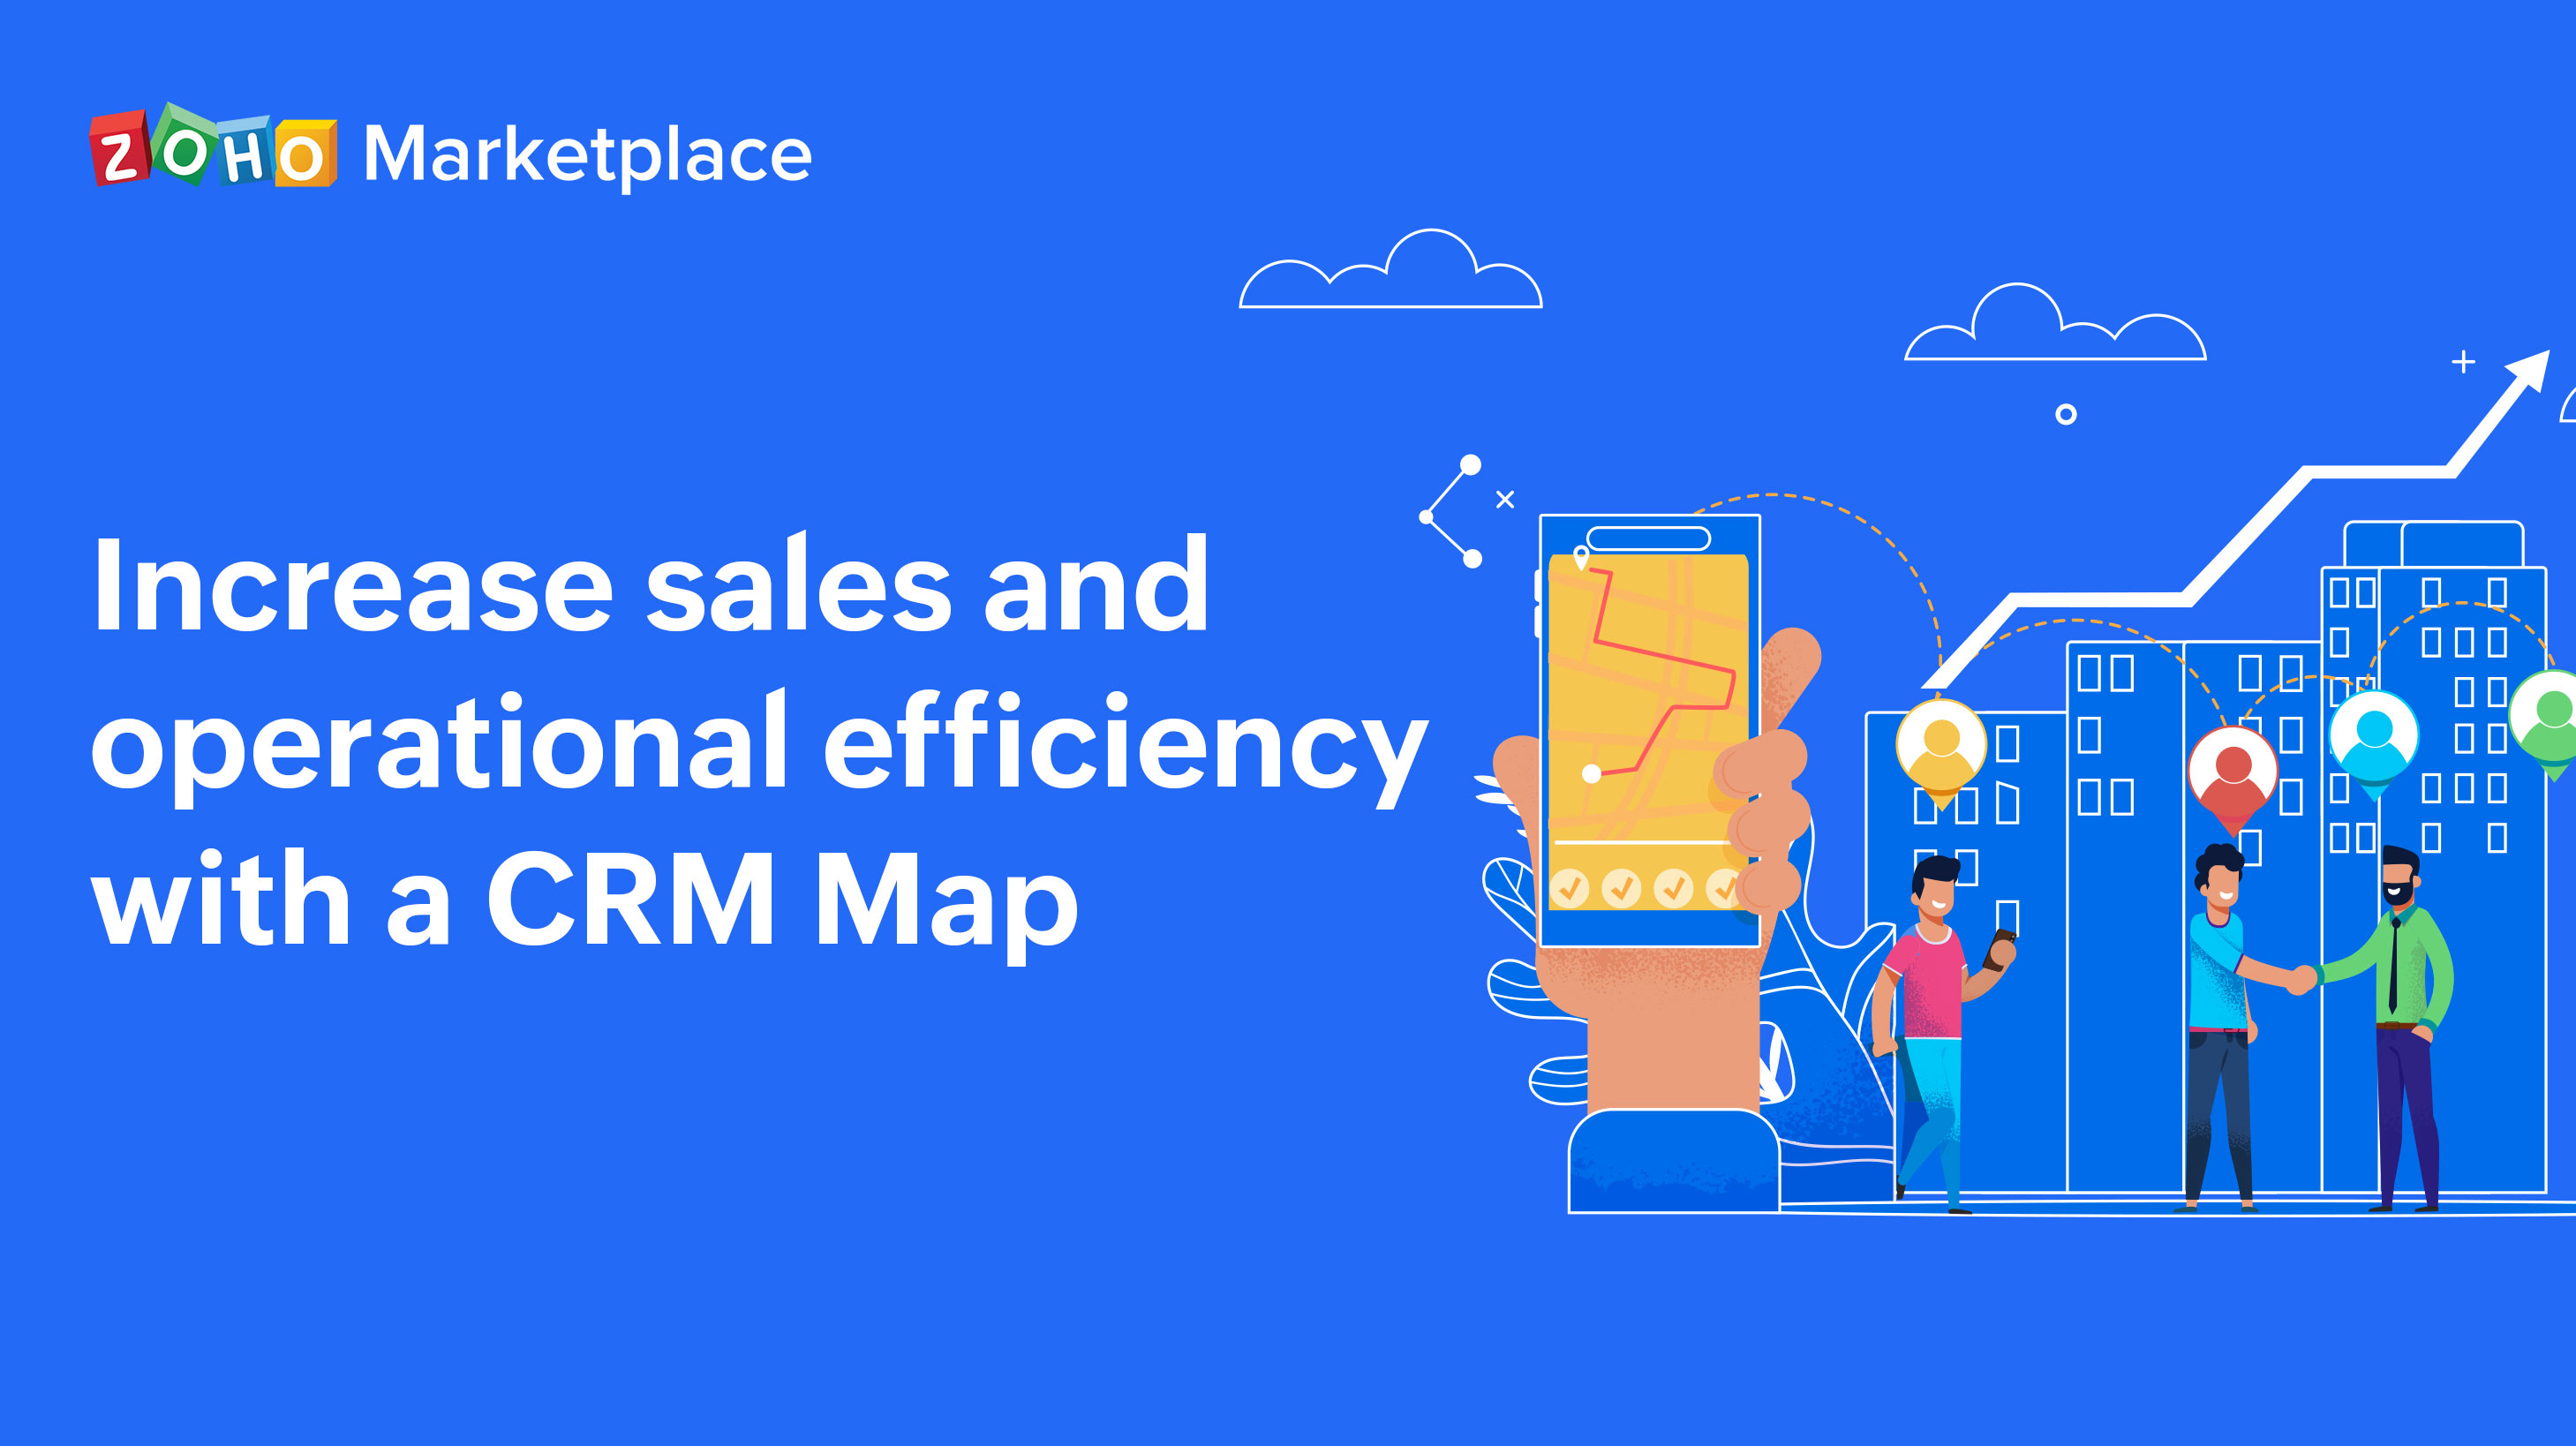 Increase sales and operational efficiency with a CRM Map